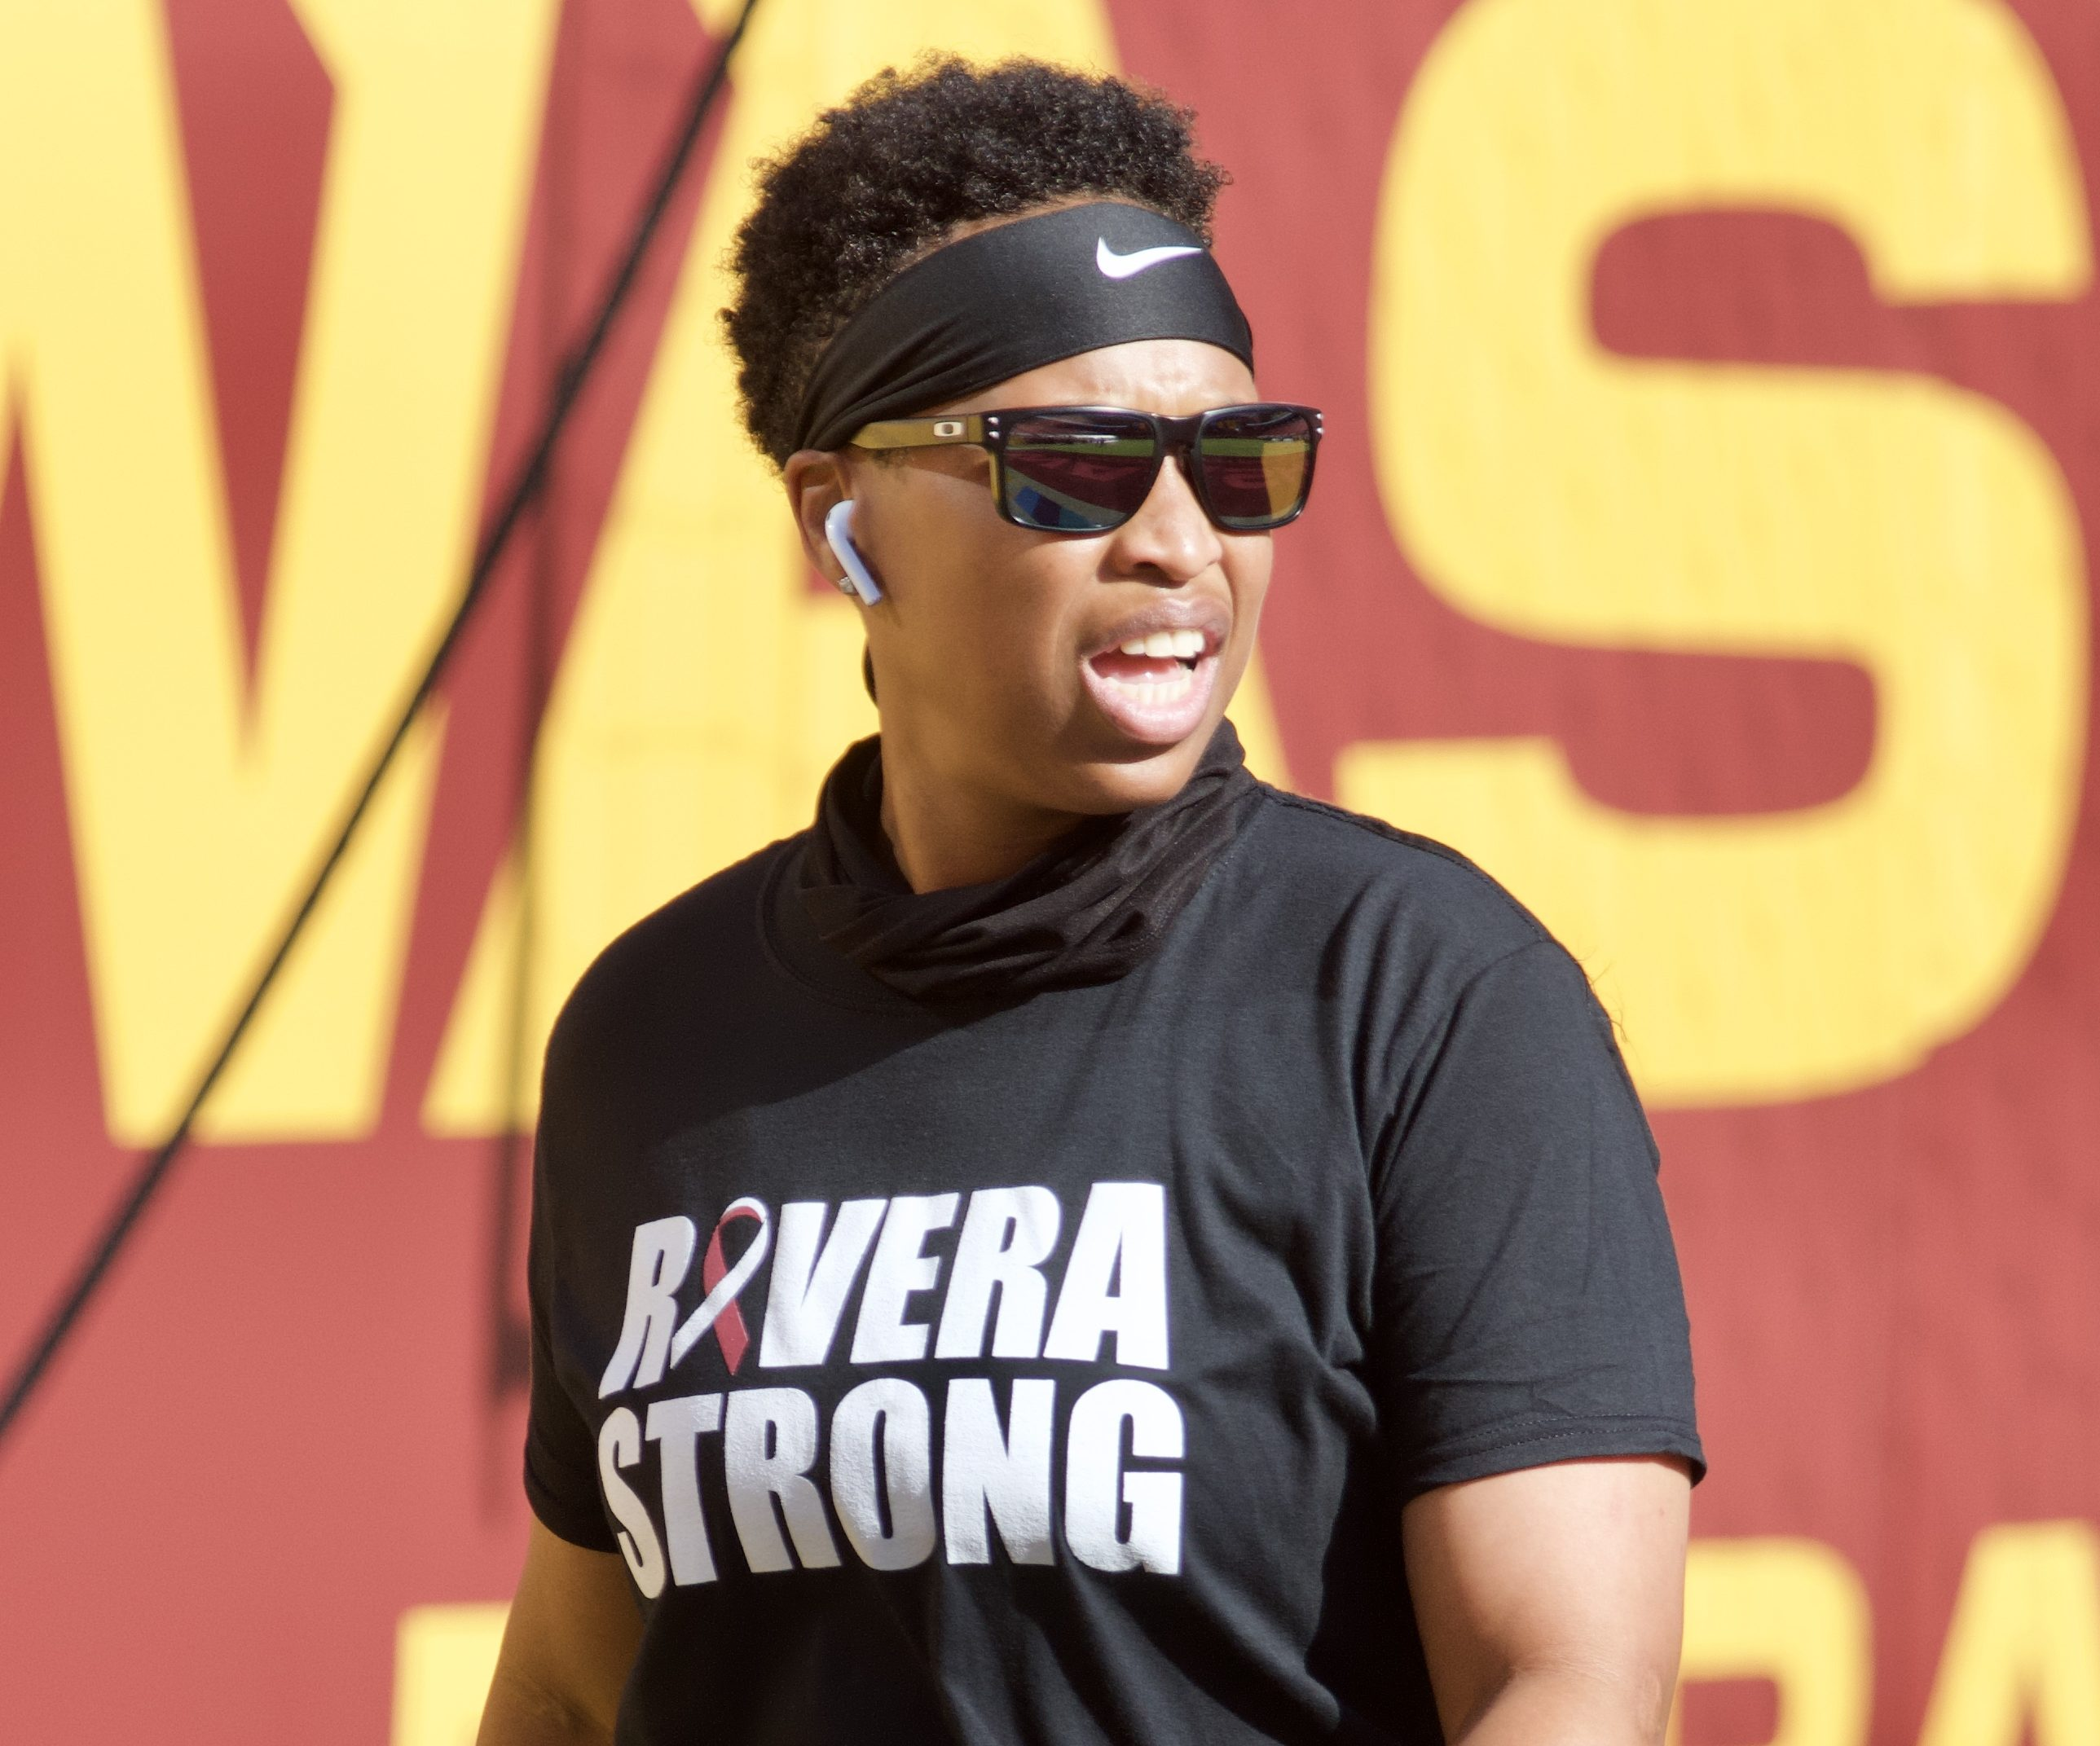 Washington's Jennifer King To Become First Black Woman Full-Time NFL Coach